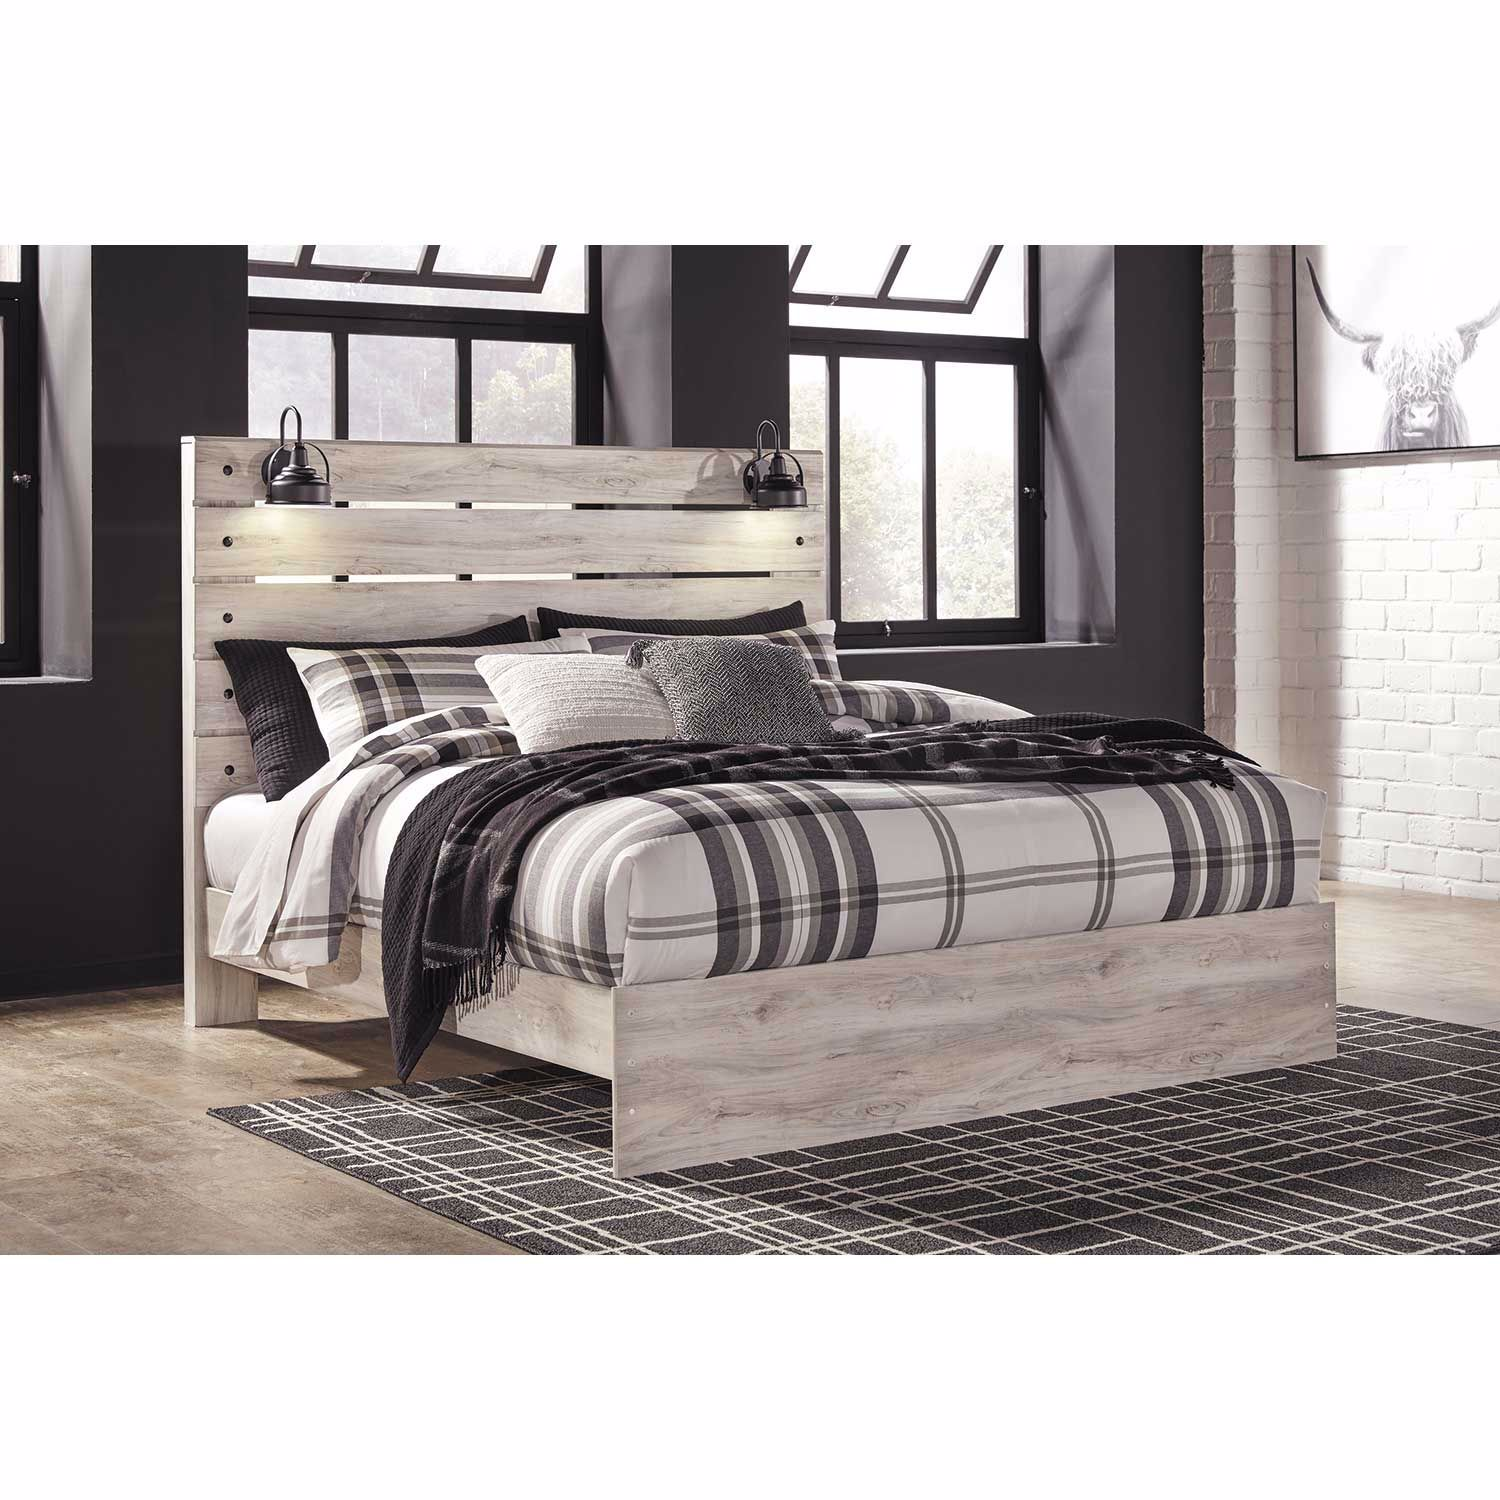 Cambeck King Panel Bed B192 56 58 97 Ashley Furniture Afw Com